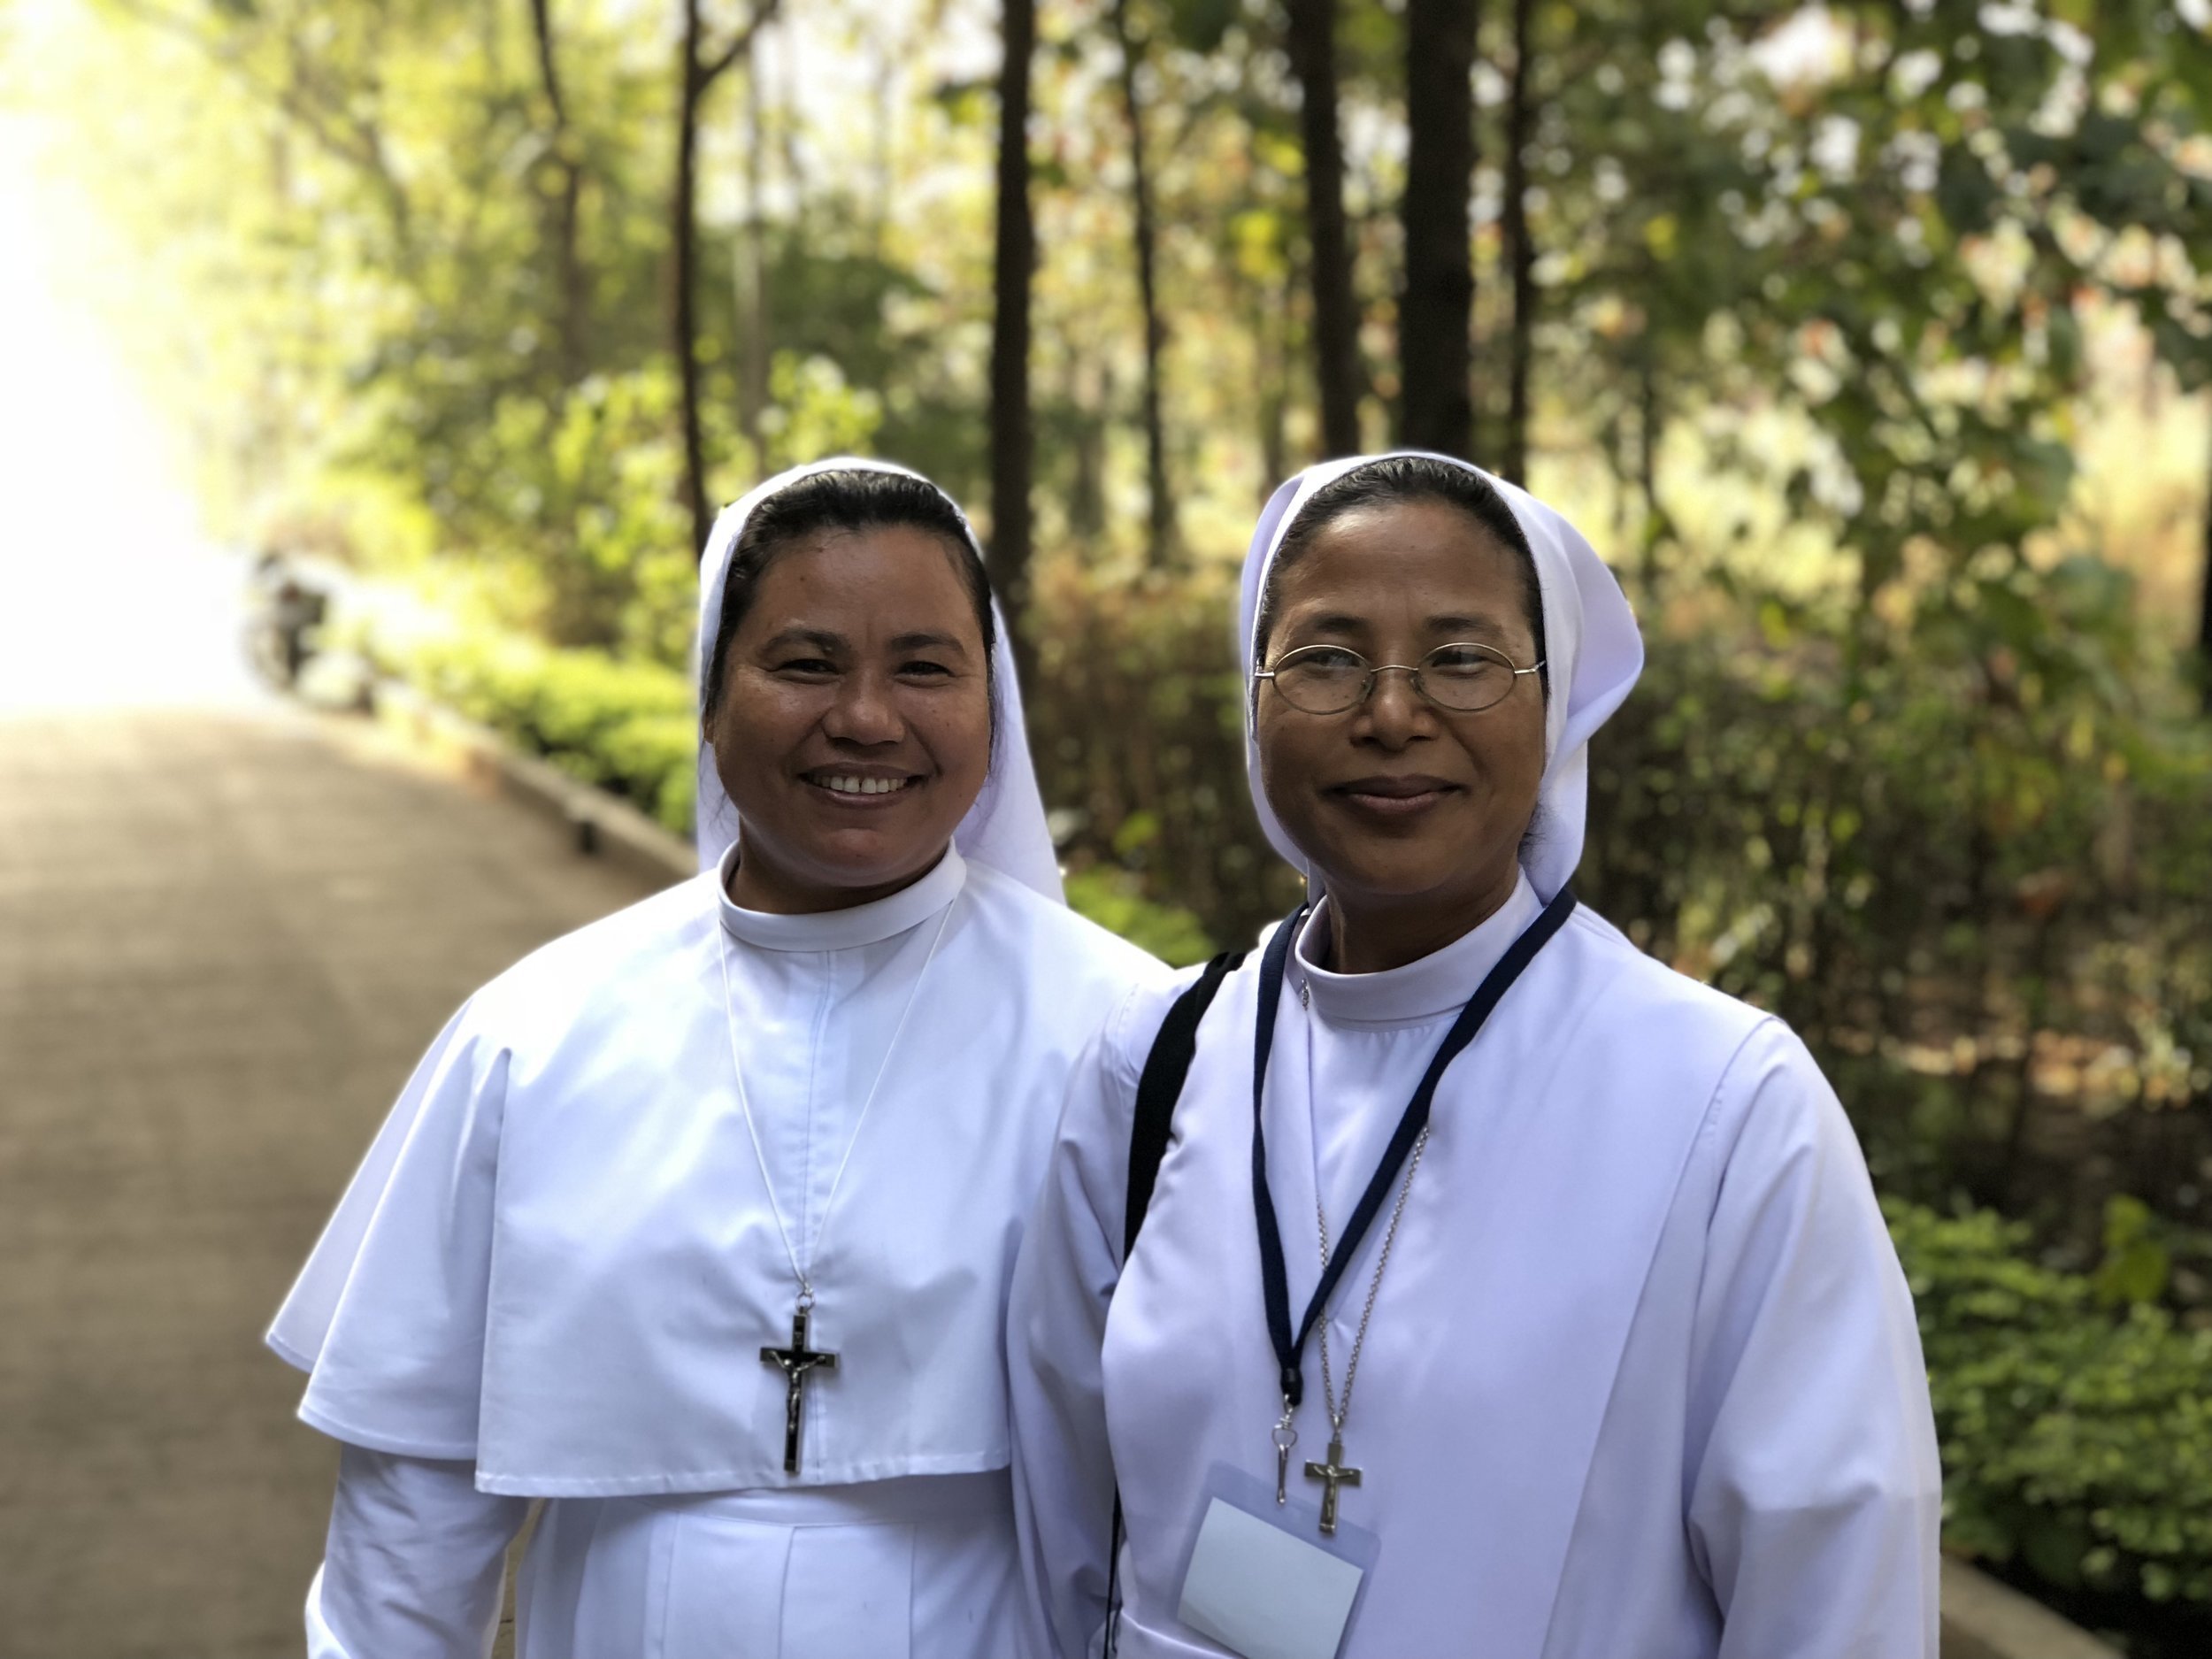 Religious Sisters from rural Assam: long-term, community-based work